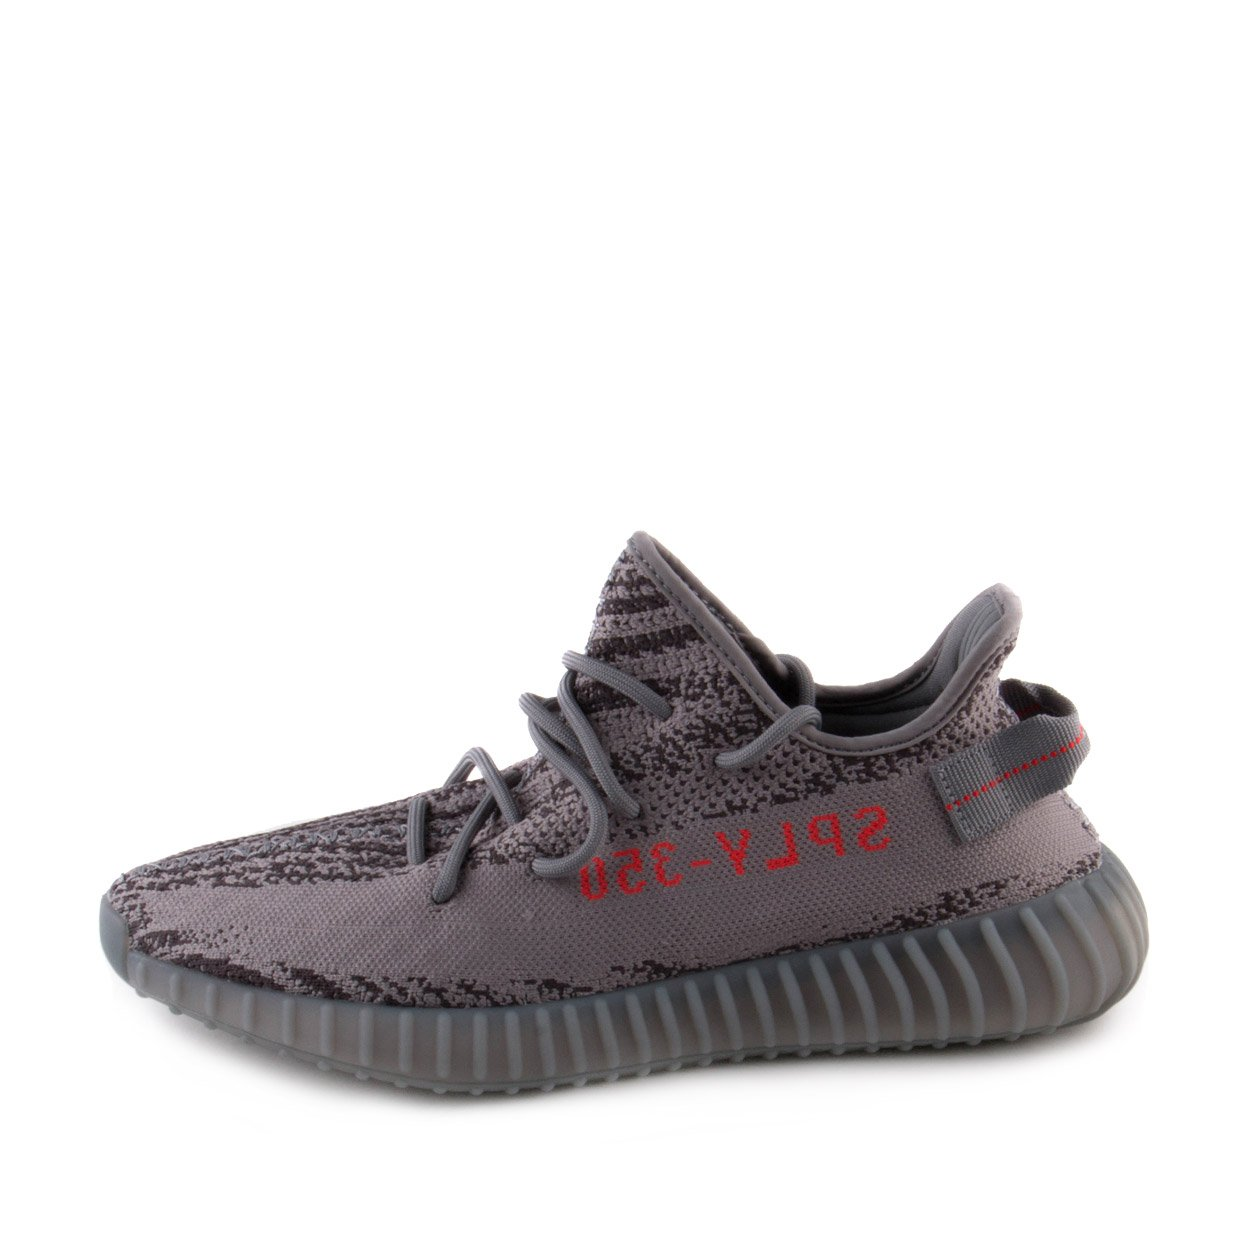 0b3b77be5a7db Galleon - Adidas Yeezy Boost 350 V2 - US 11.5